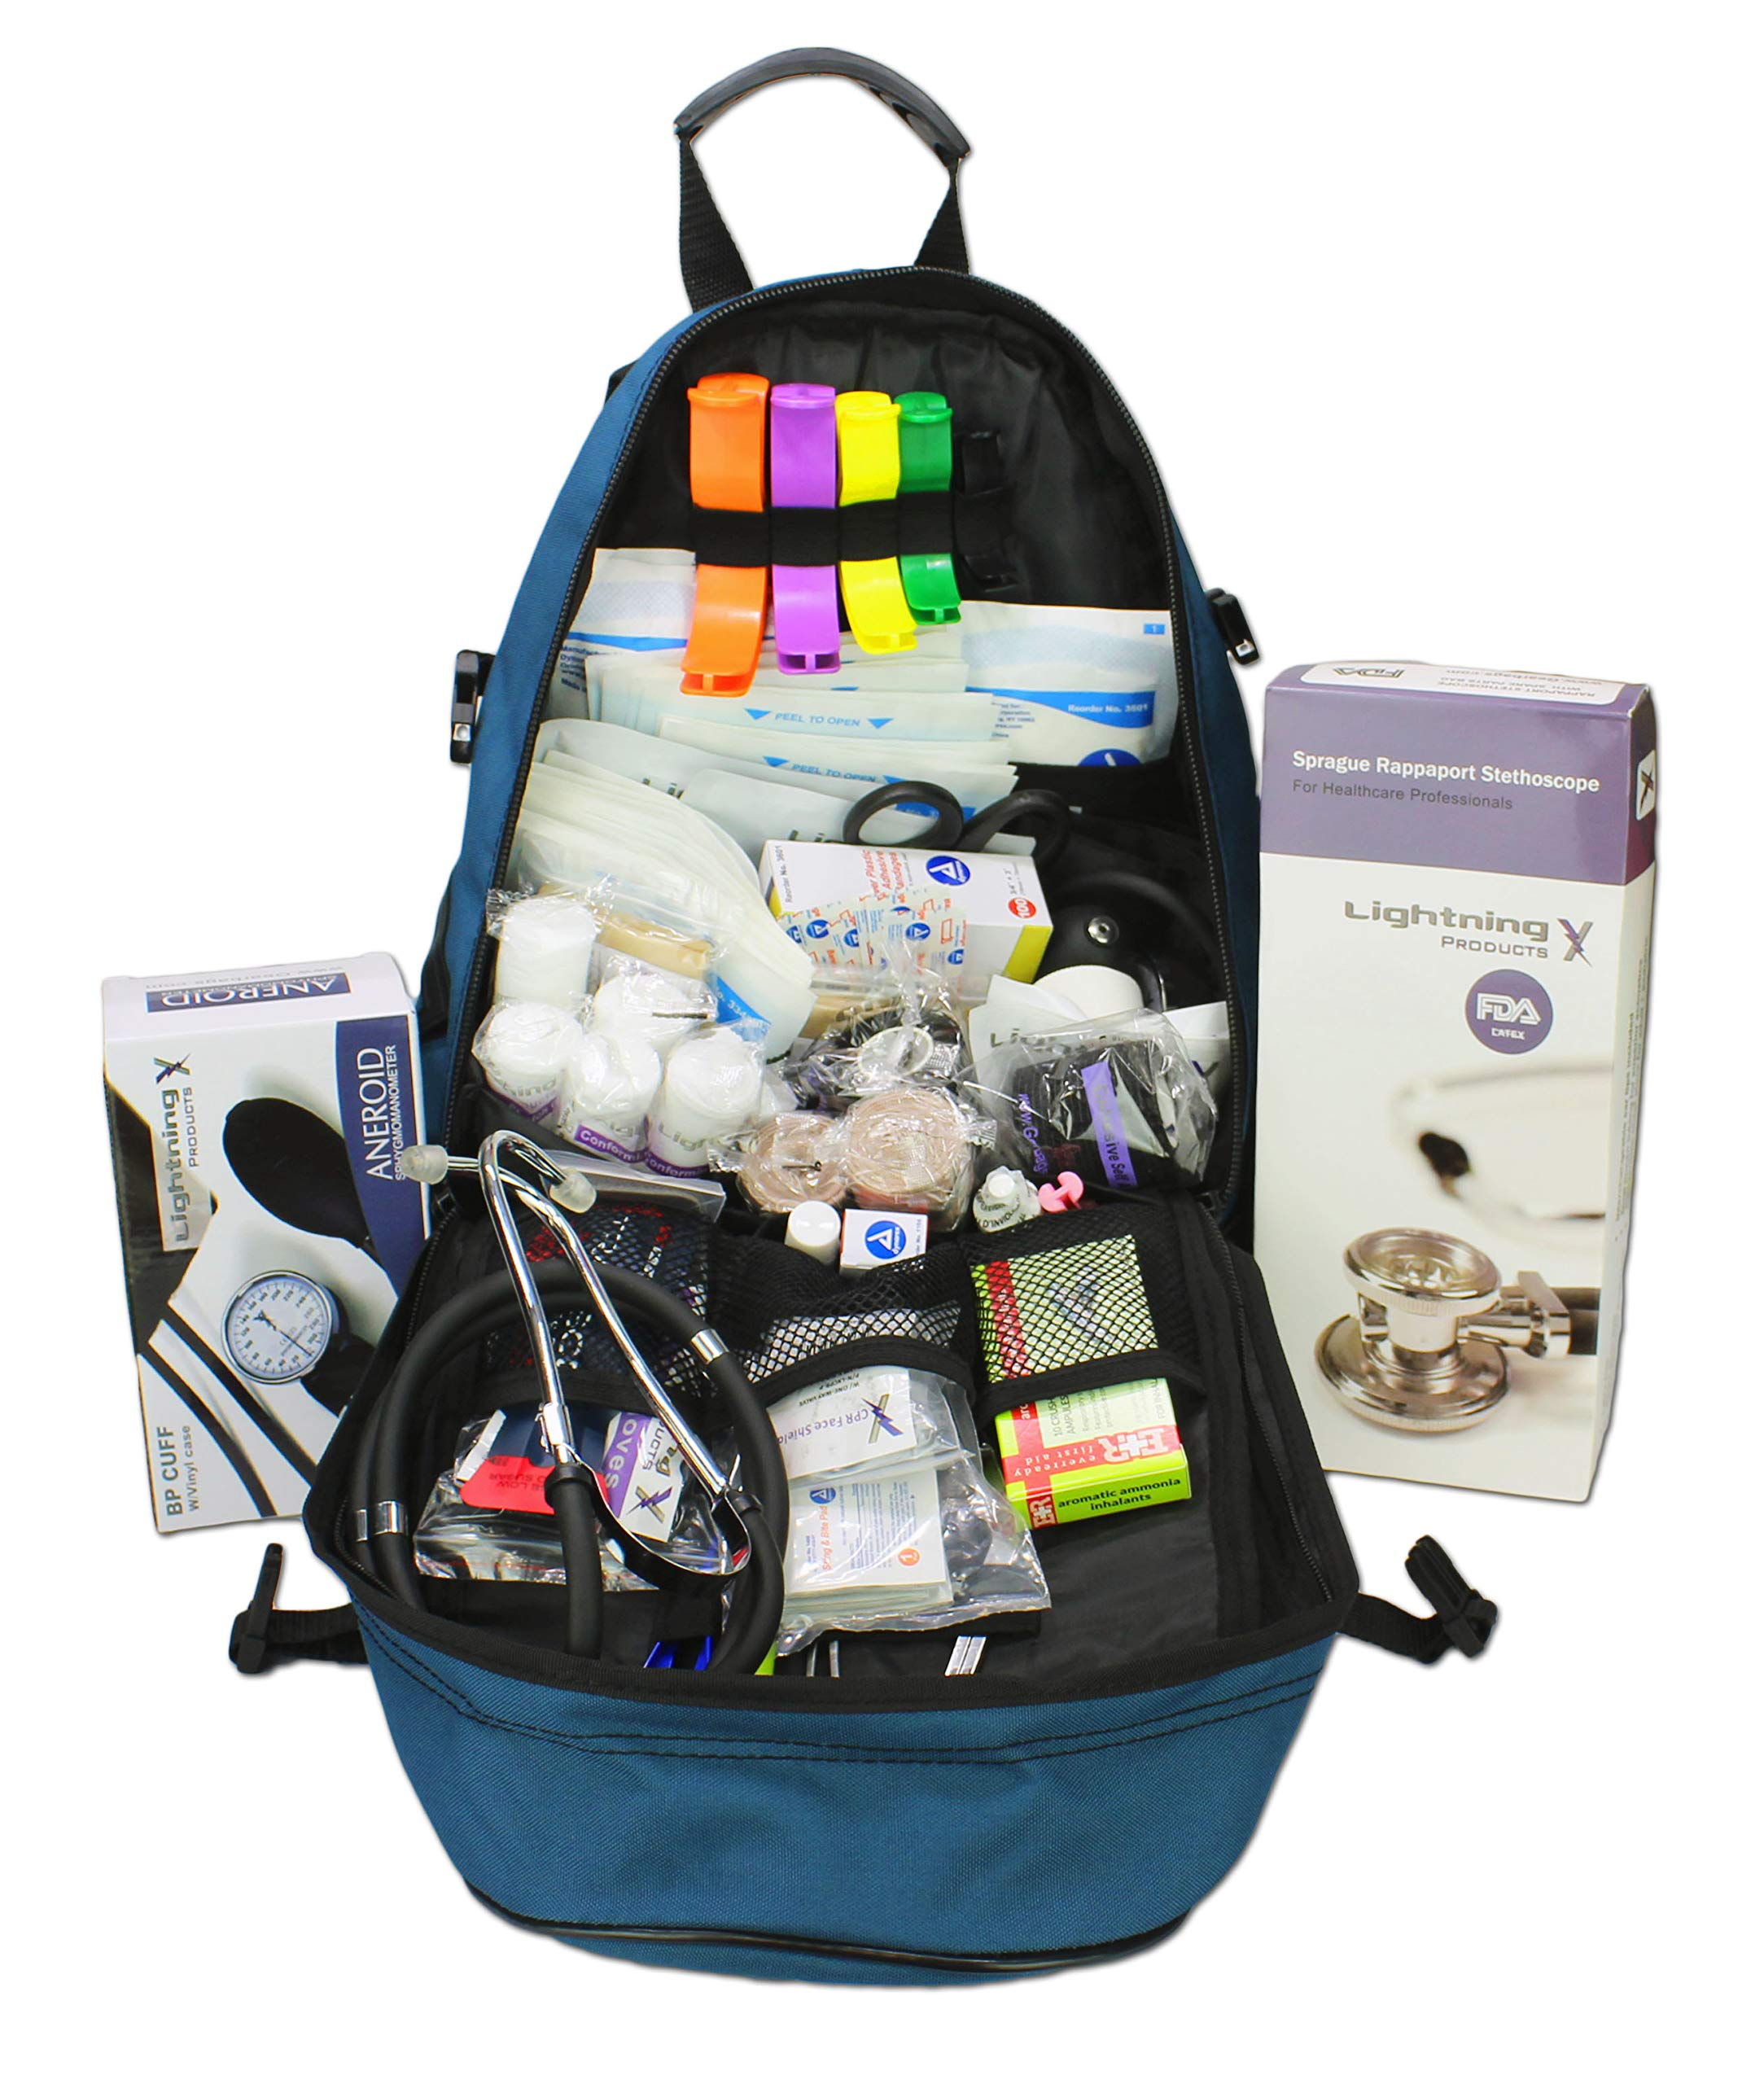 Lightning X First Responder EMT/EMS Backpack Stocked First Aid Supplies Kit B (Navy Blue)